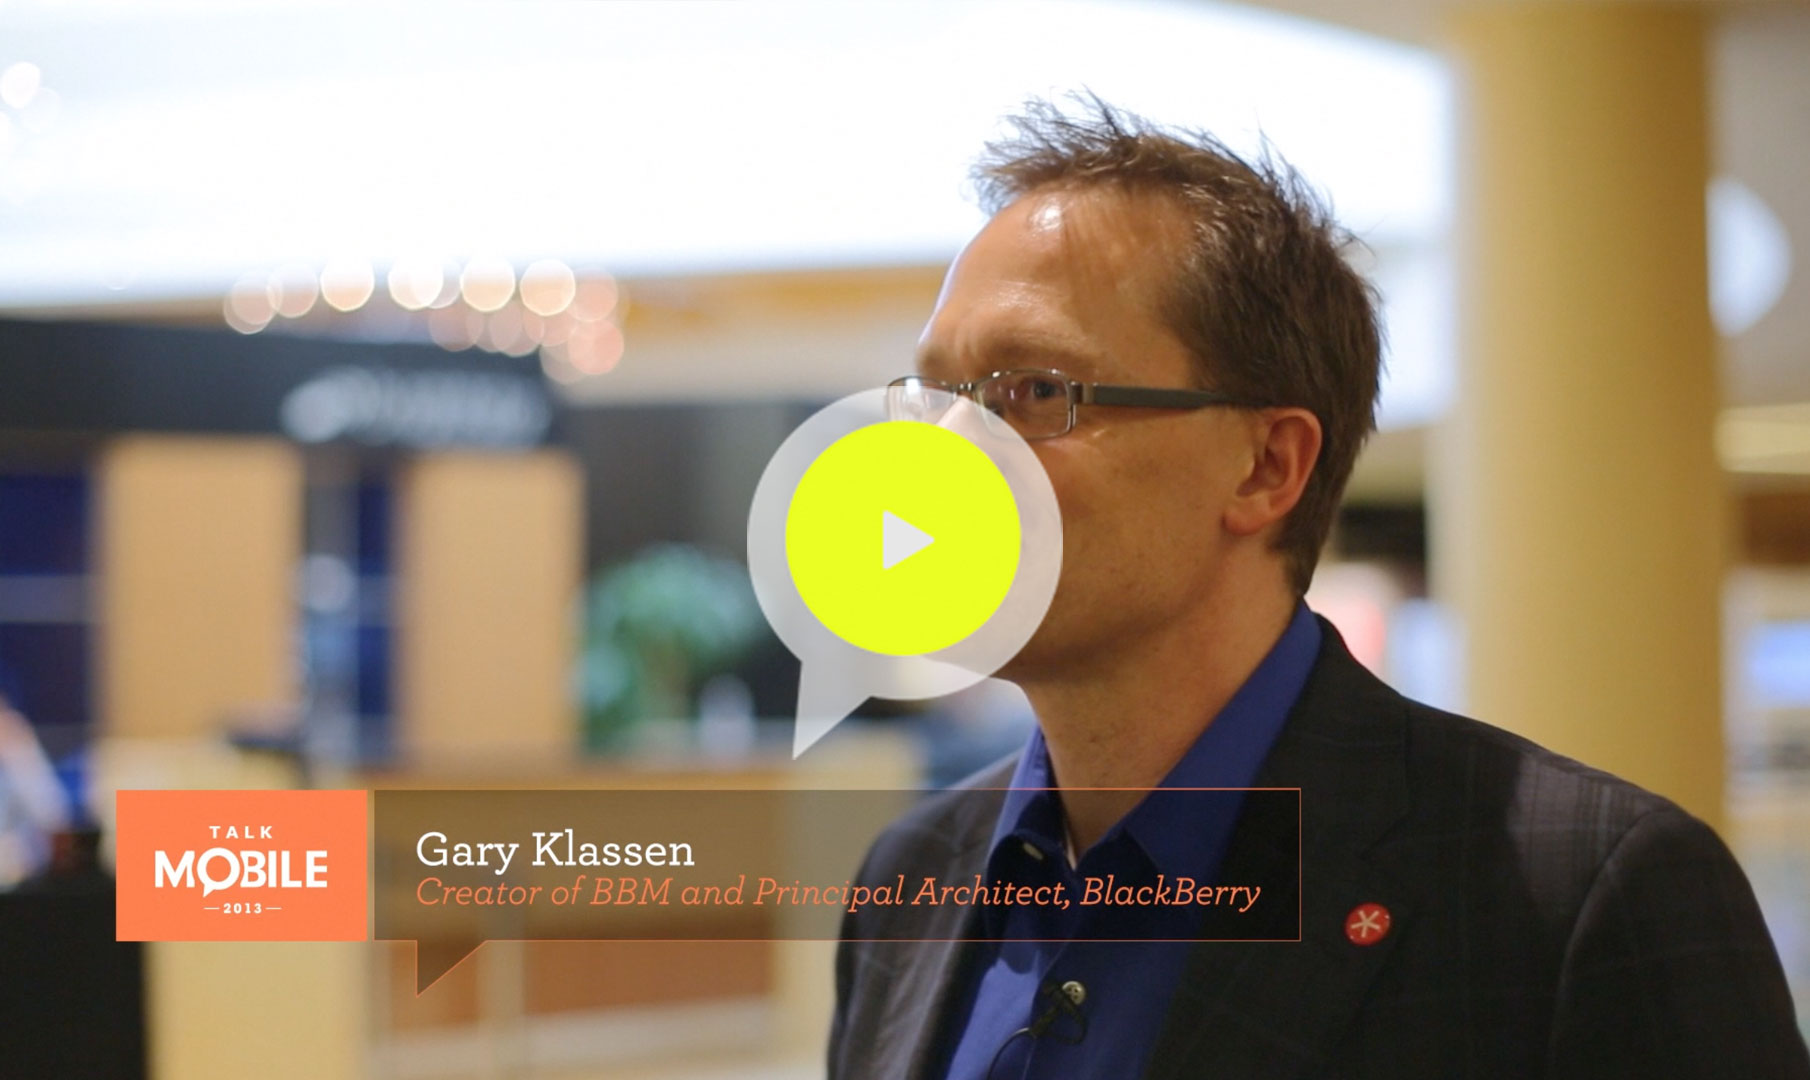 Watch Gary Klassen talk about what makes a great communications platform.